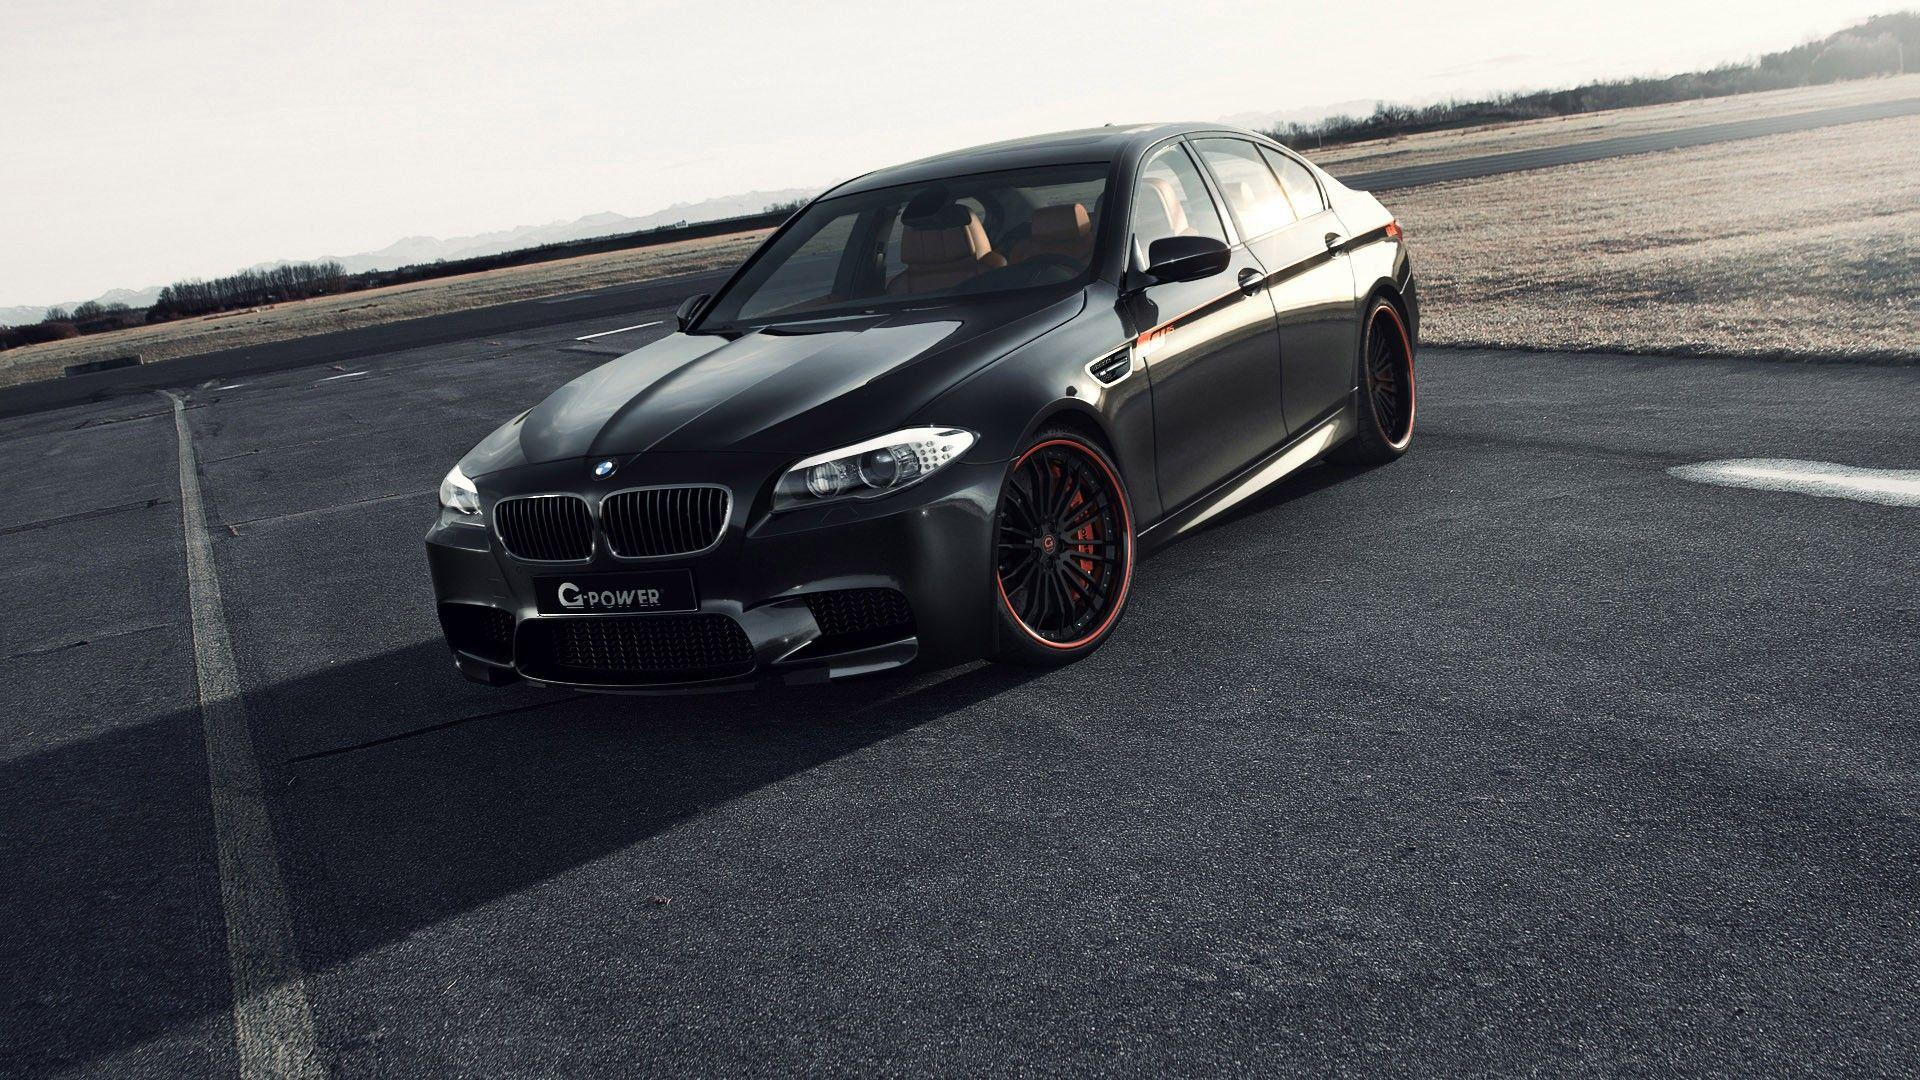 Bmw M Power Wallpapers Desktop New Cars Wallpapers Bmw M5 Black